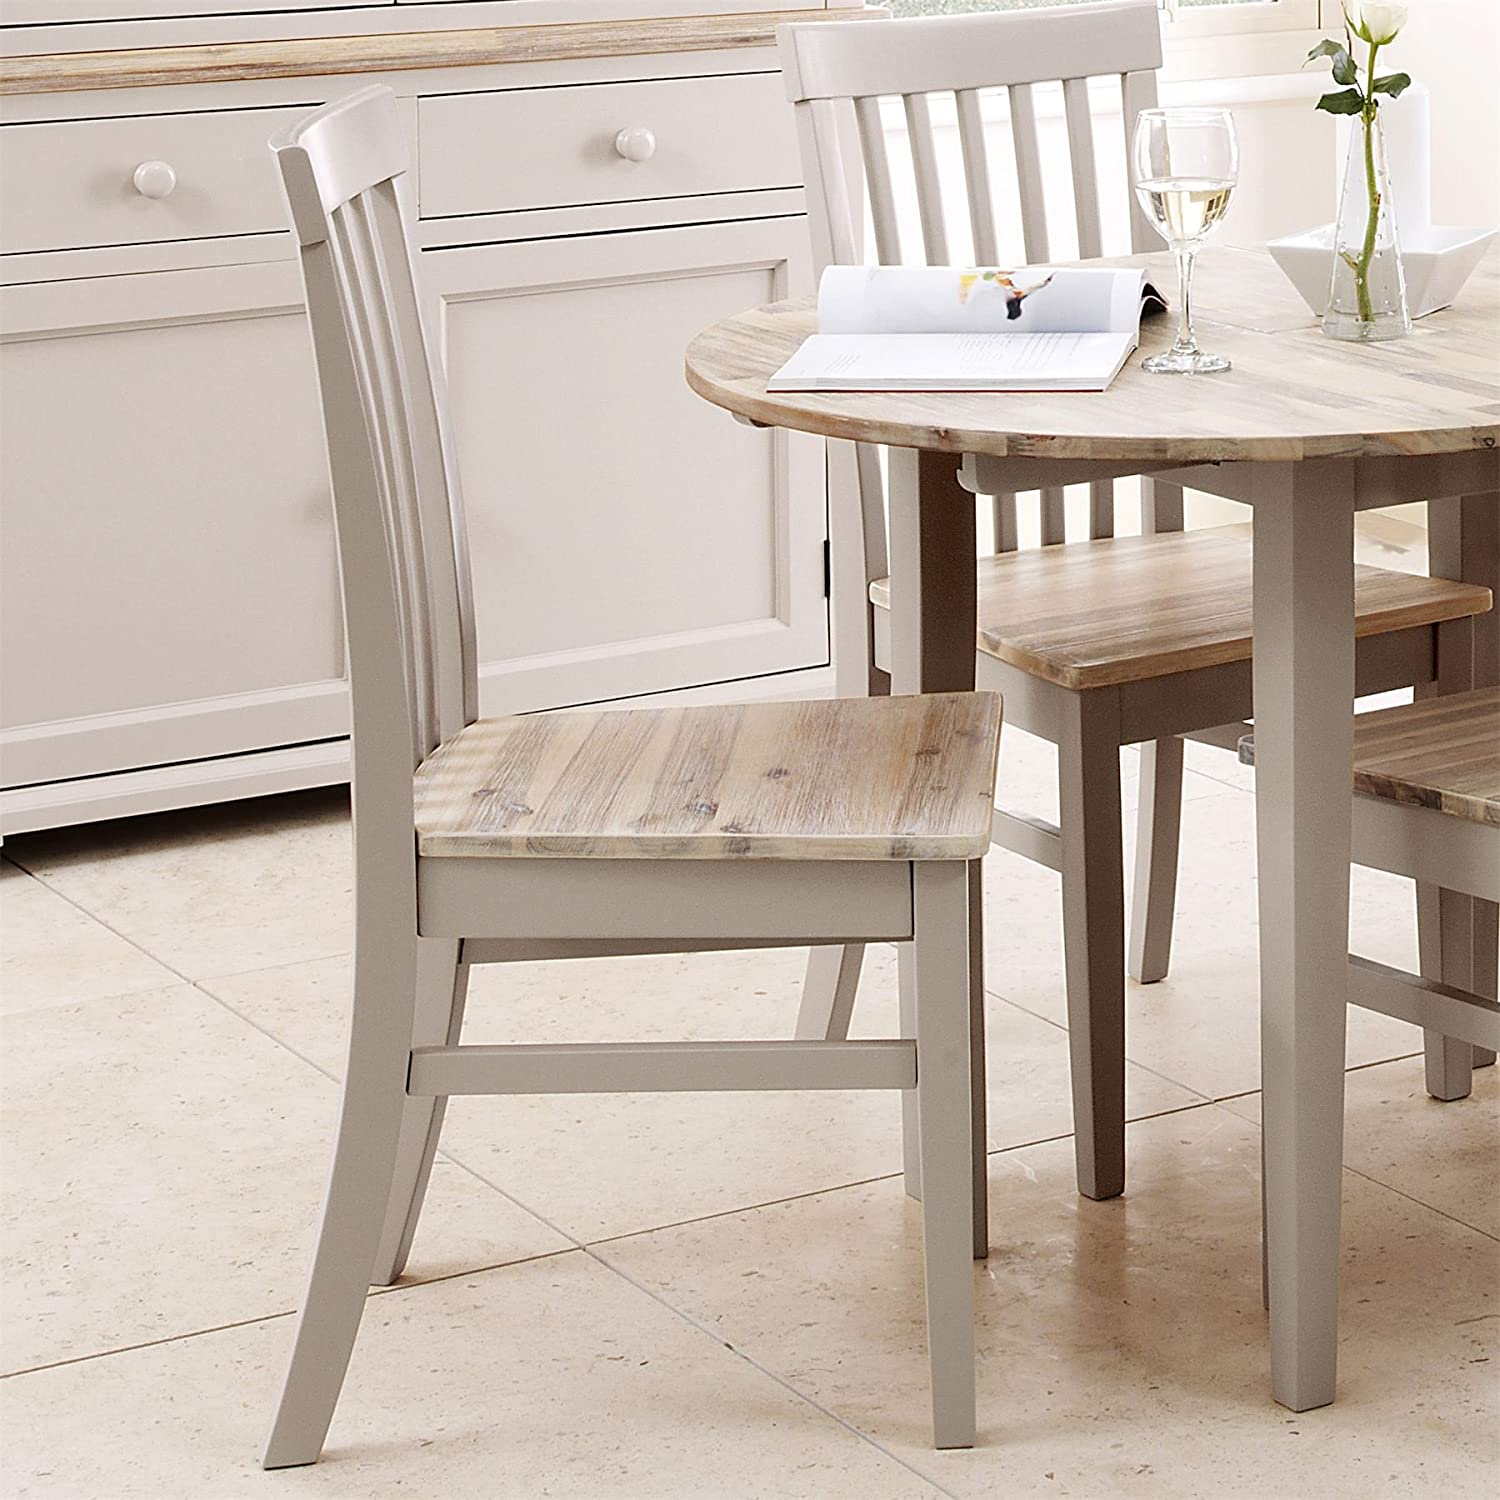 Florence High back chair. Dining chair with wooden seat in Truffle colour. Kitchen chair Statement Furniture